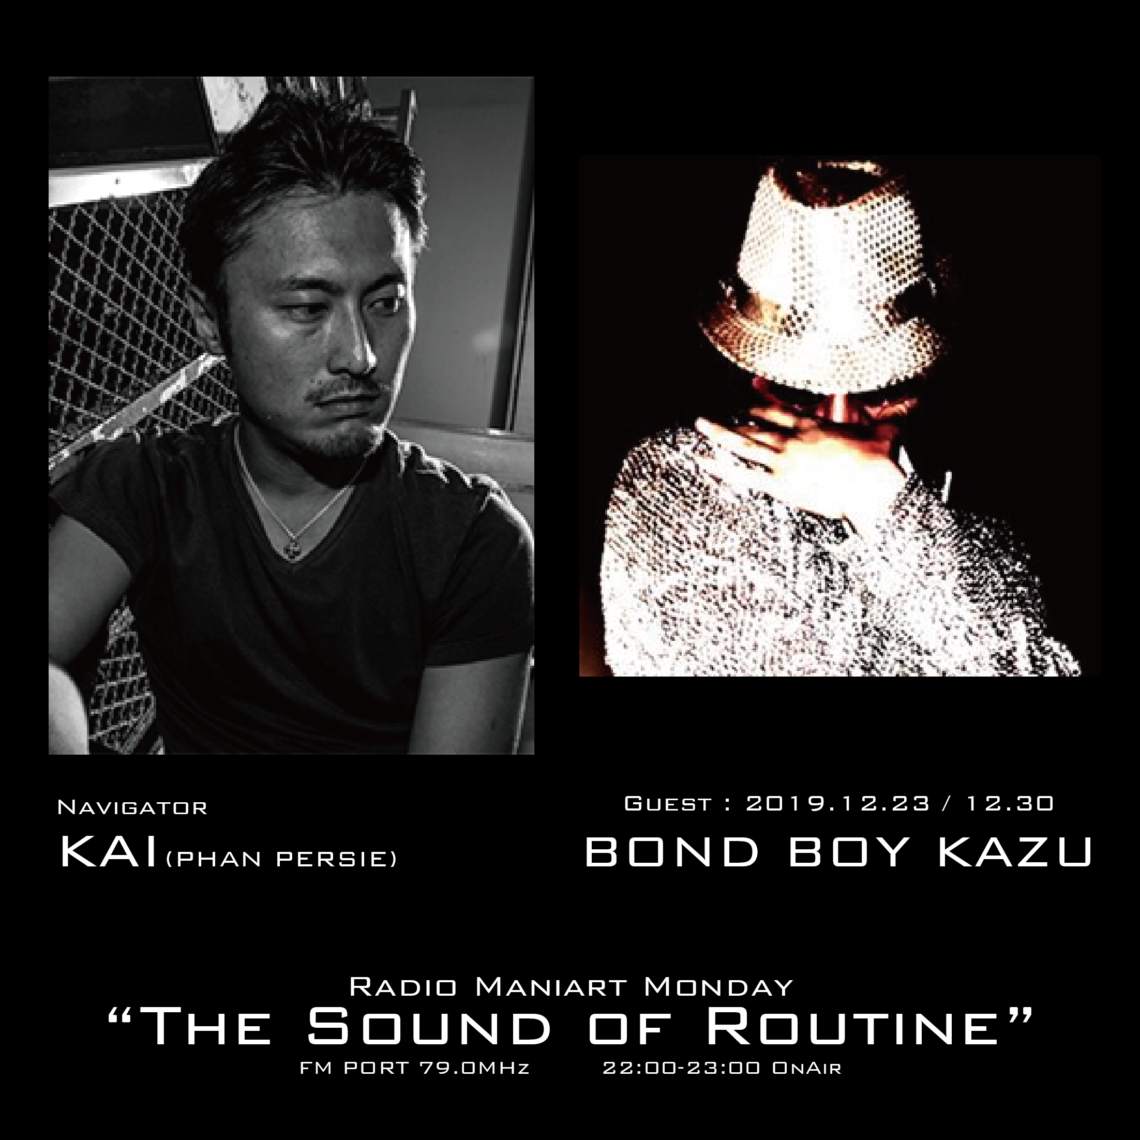 2019. 12. 23 MON, 12. 30 MON – KAI : Navigator on FM PORT / the Sound of Routine – Guest : BOND BOY KAZU